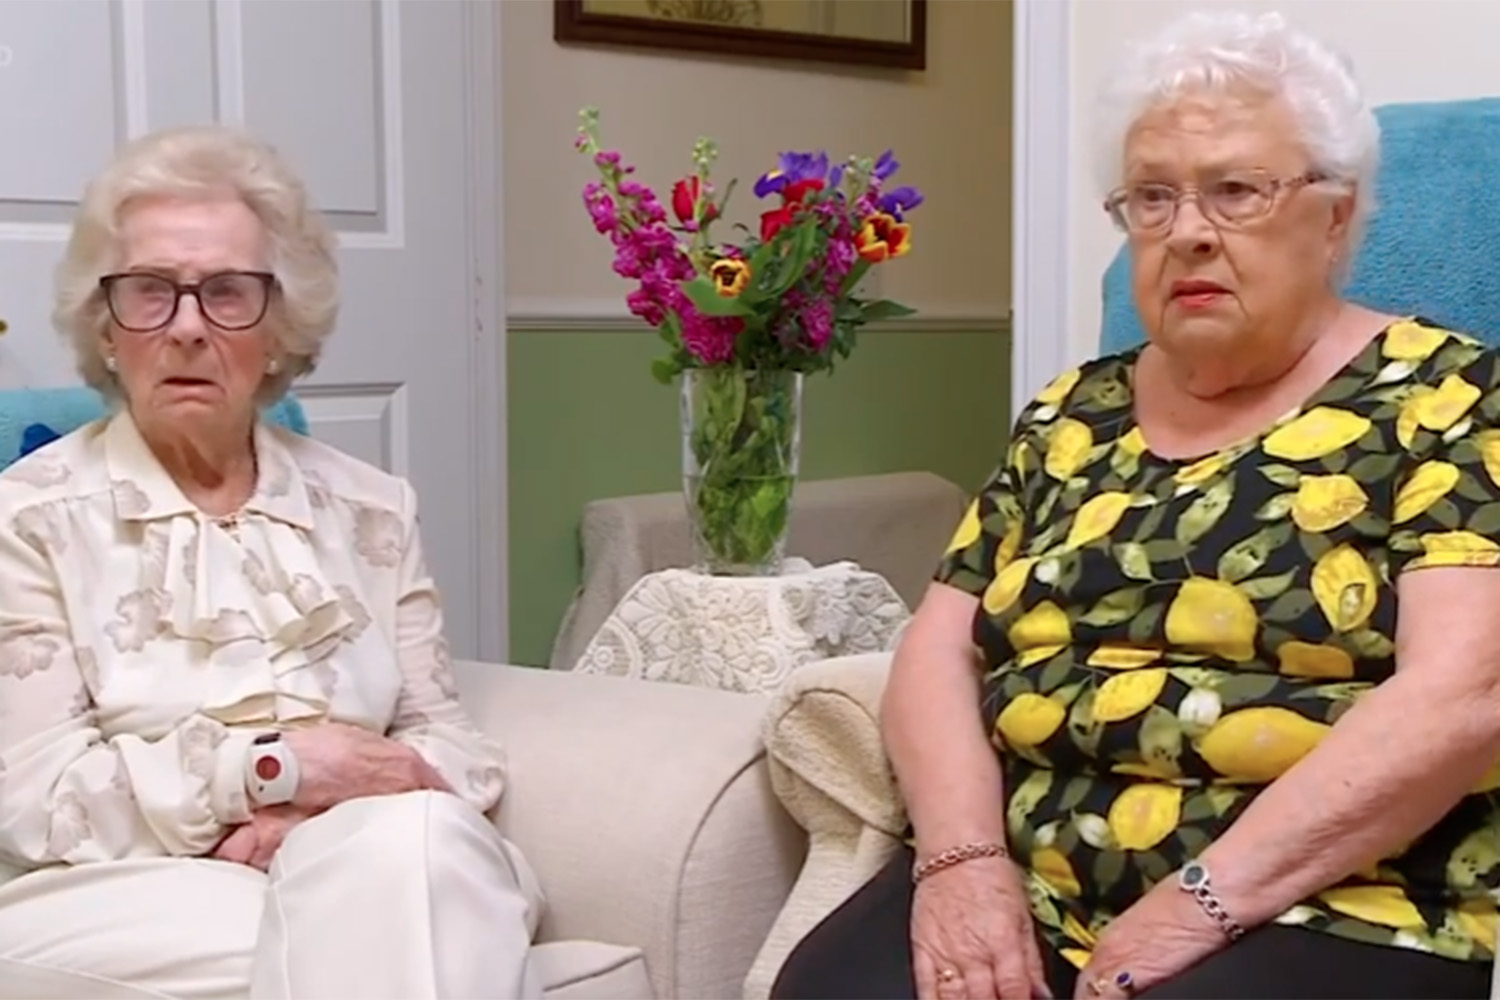 Gogglebox bosses stopped filming elderly pair Mary and Marina due to coronavirus risk